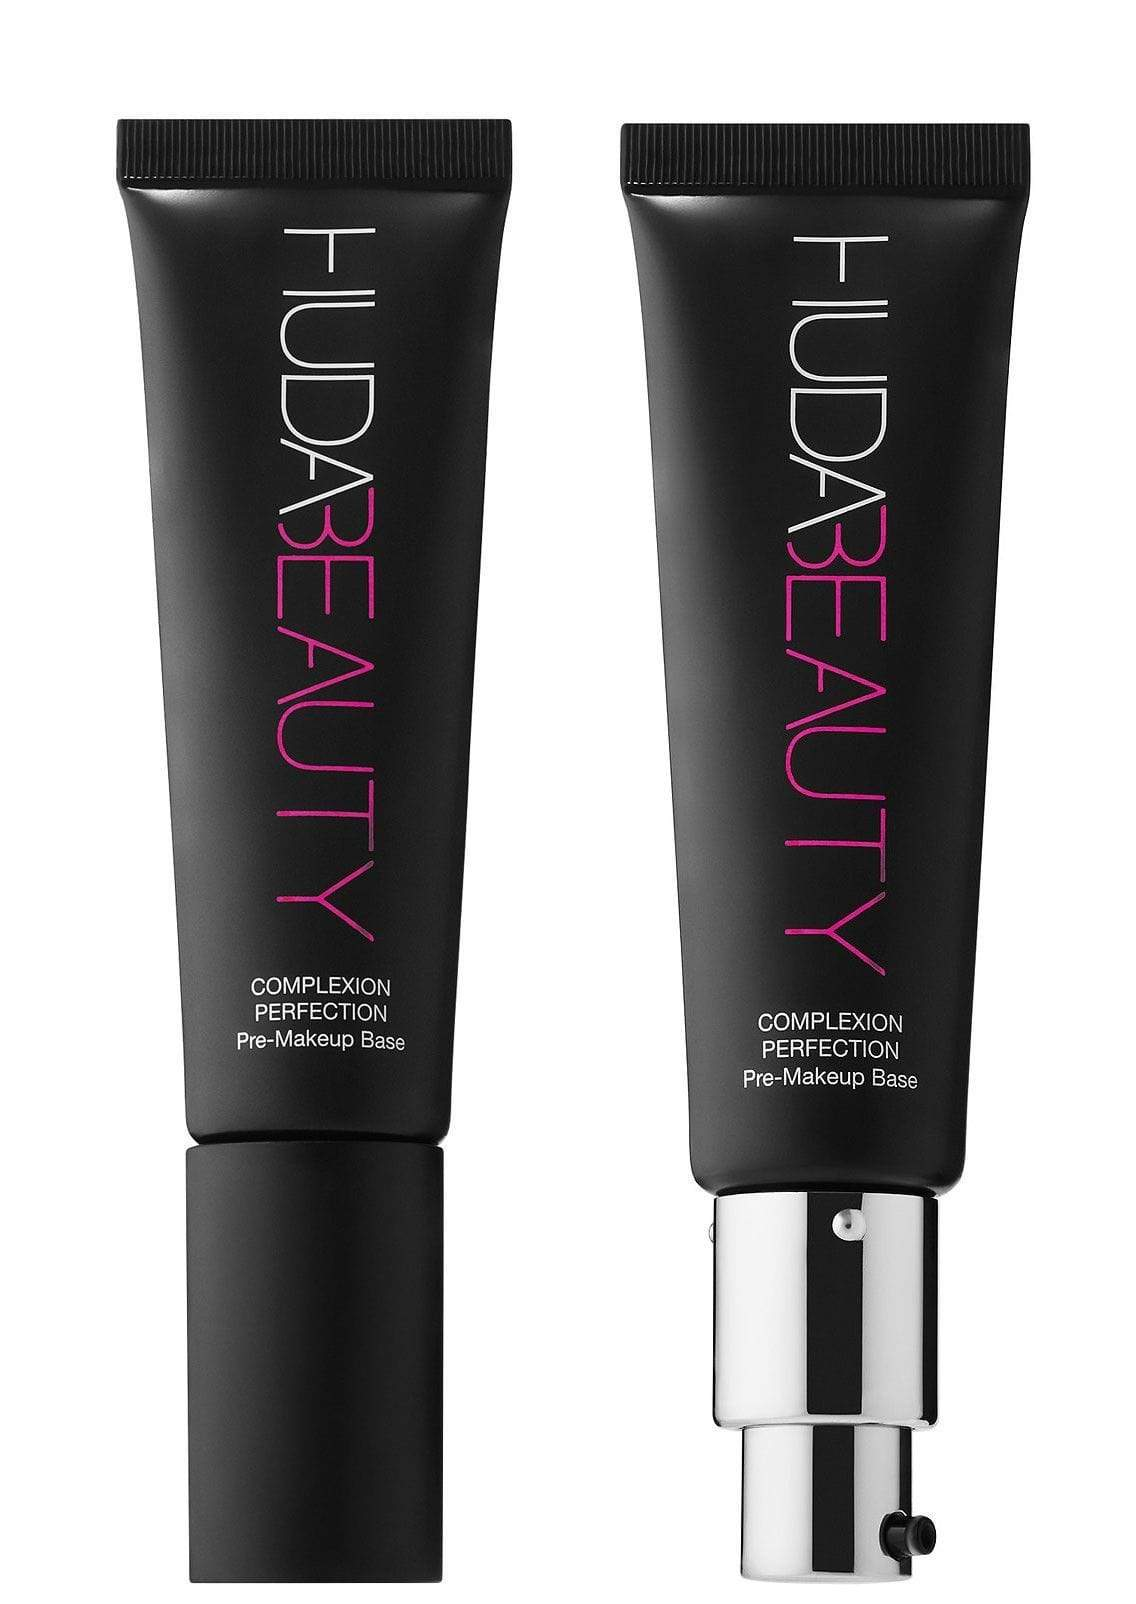 Huda Beauty Face Primer Huda Beauty Matte Perfection Pre-Makeup Base, 30ml